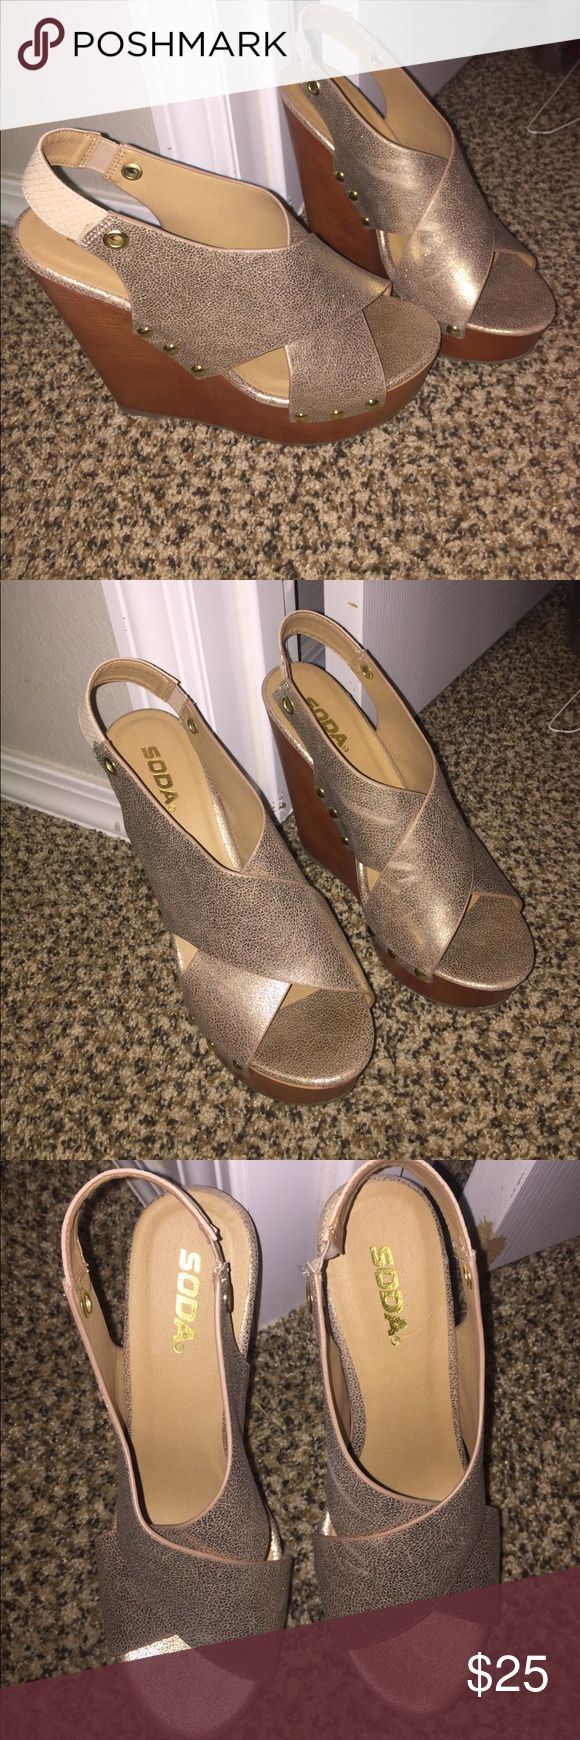 Size 8 1/2 Gold Wedge Heels Never worn gold wedges. *great condition* Brand: Soda Size: 8 1/2 Soda Shoes Wedges